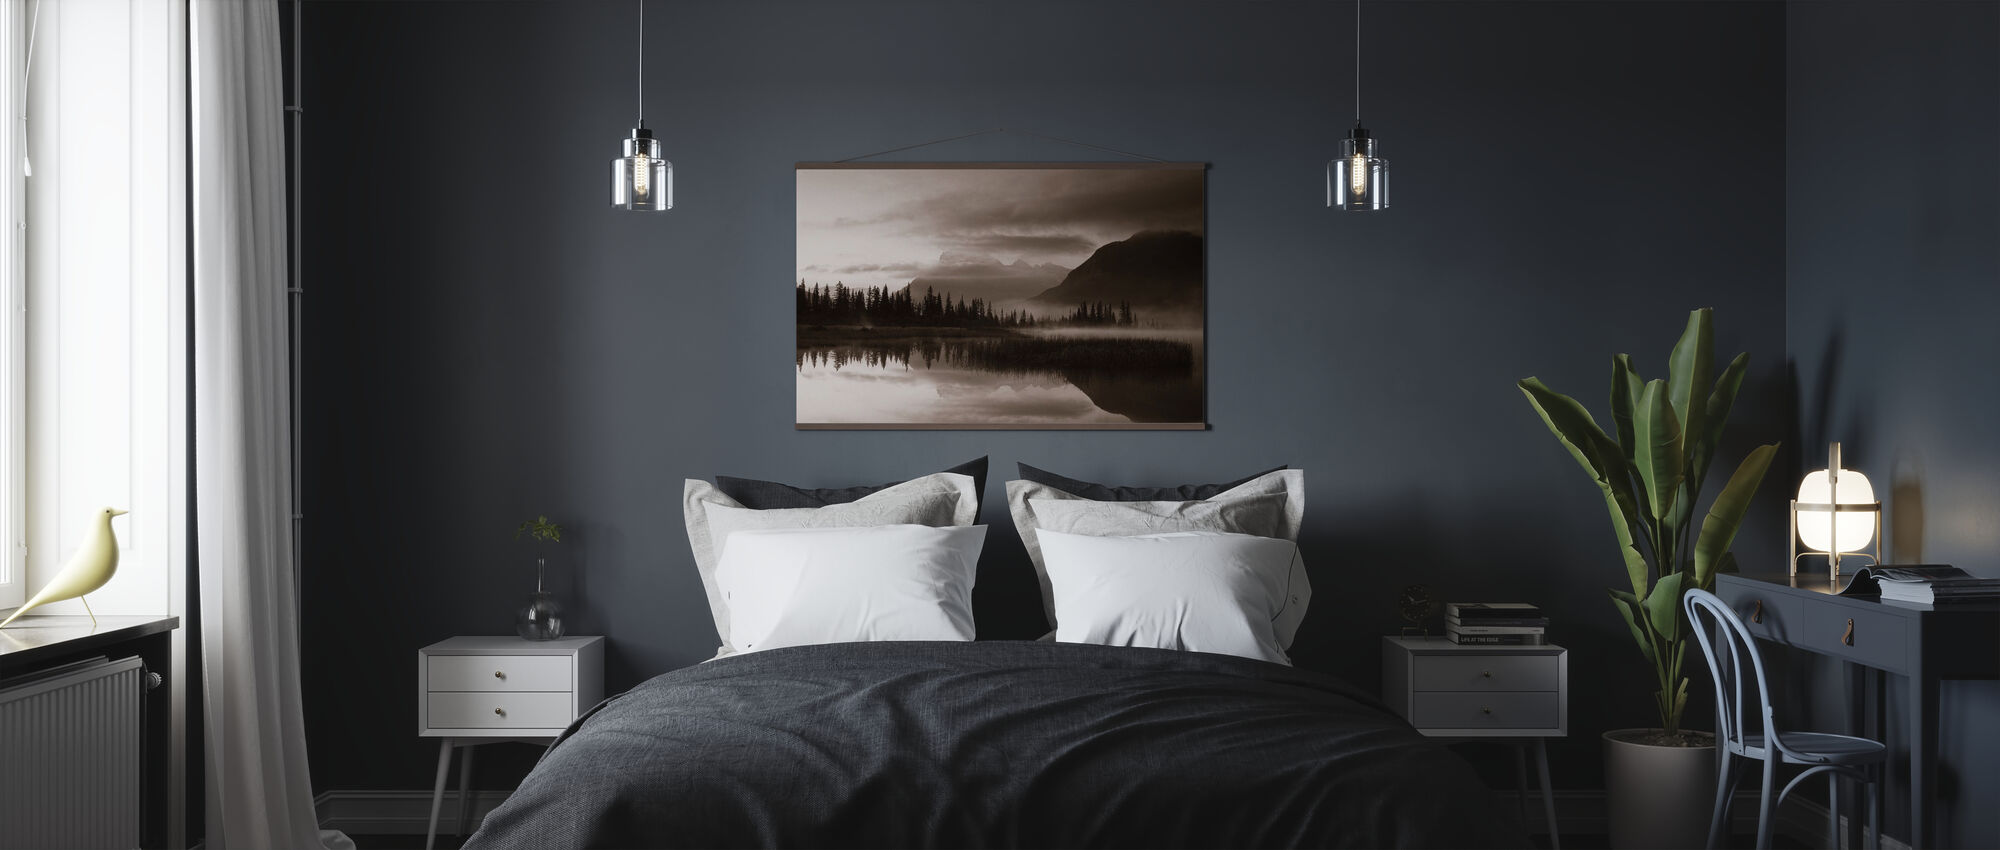 Reflection - Sepia - Poster - Bedroom